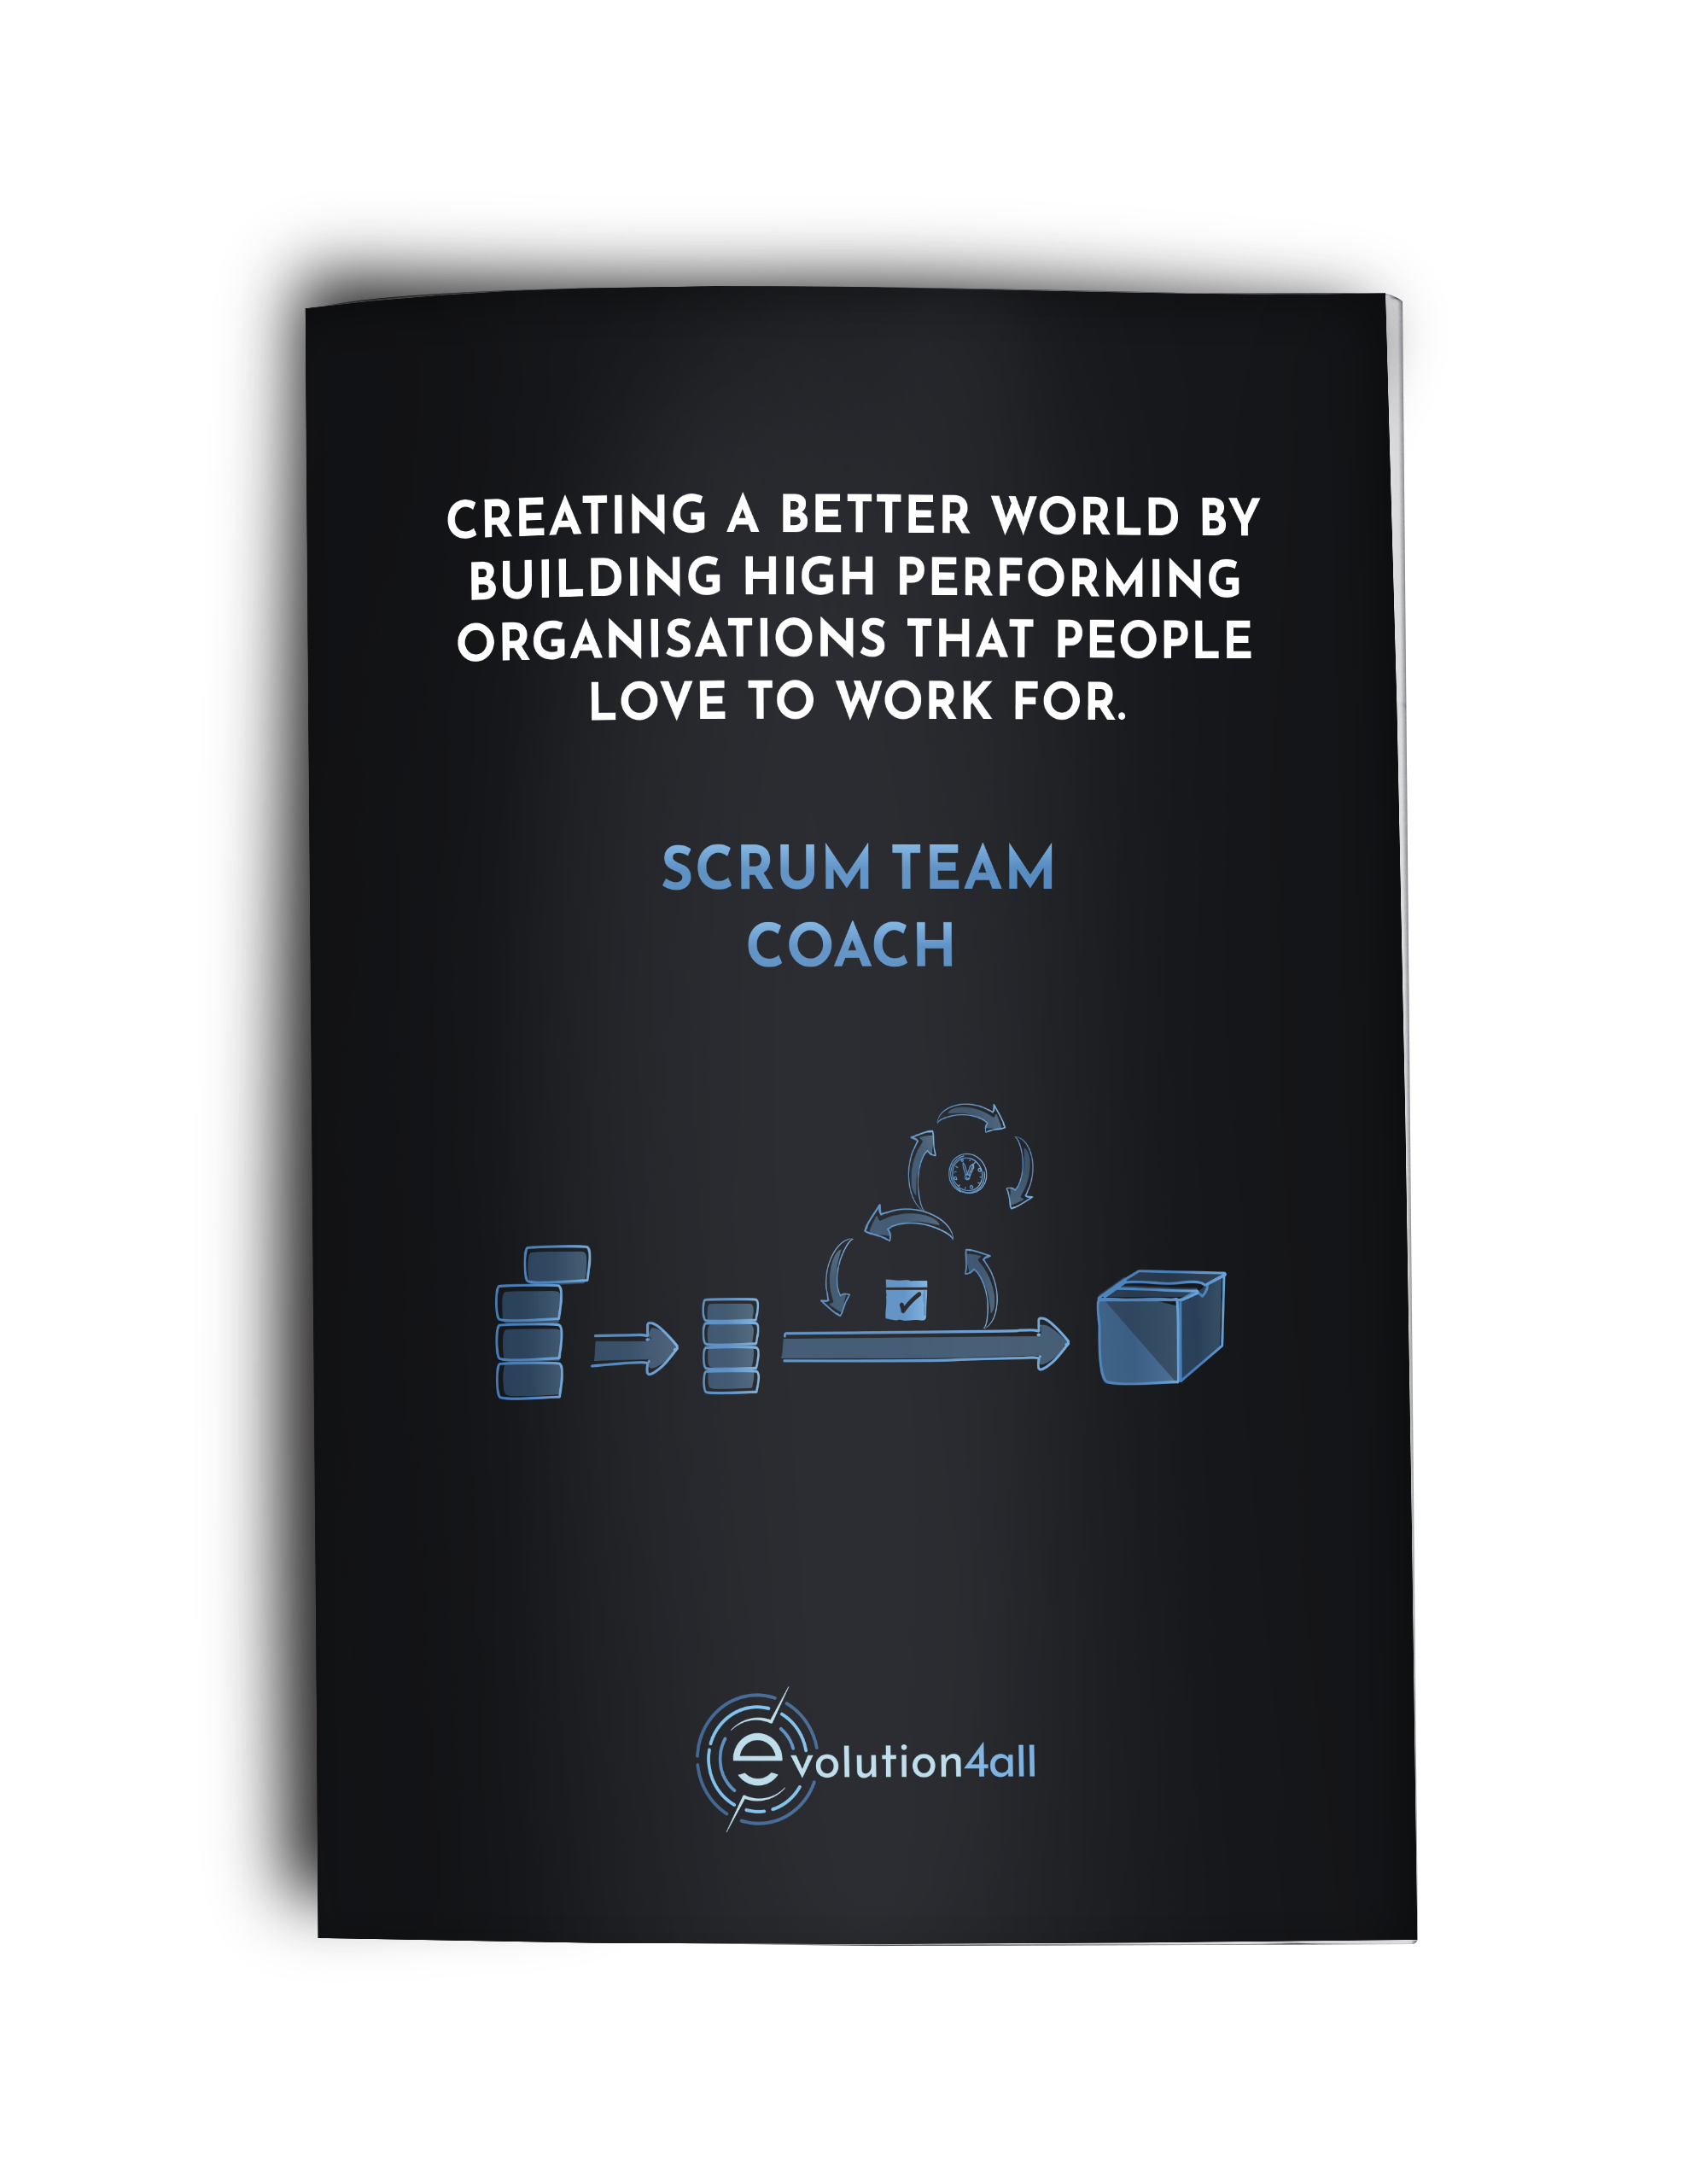 SCRUM TEAM COACH